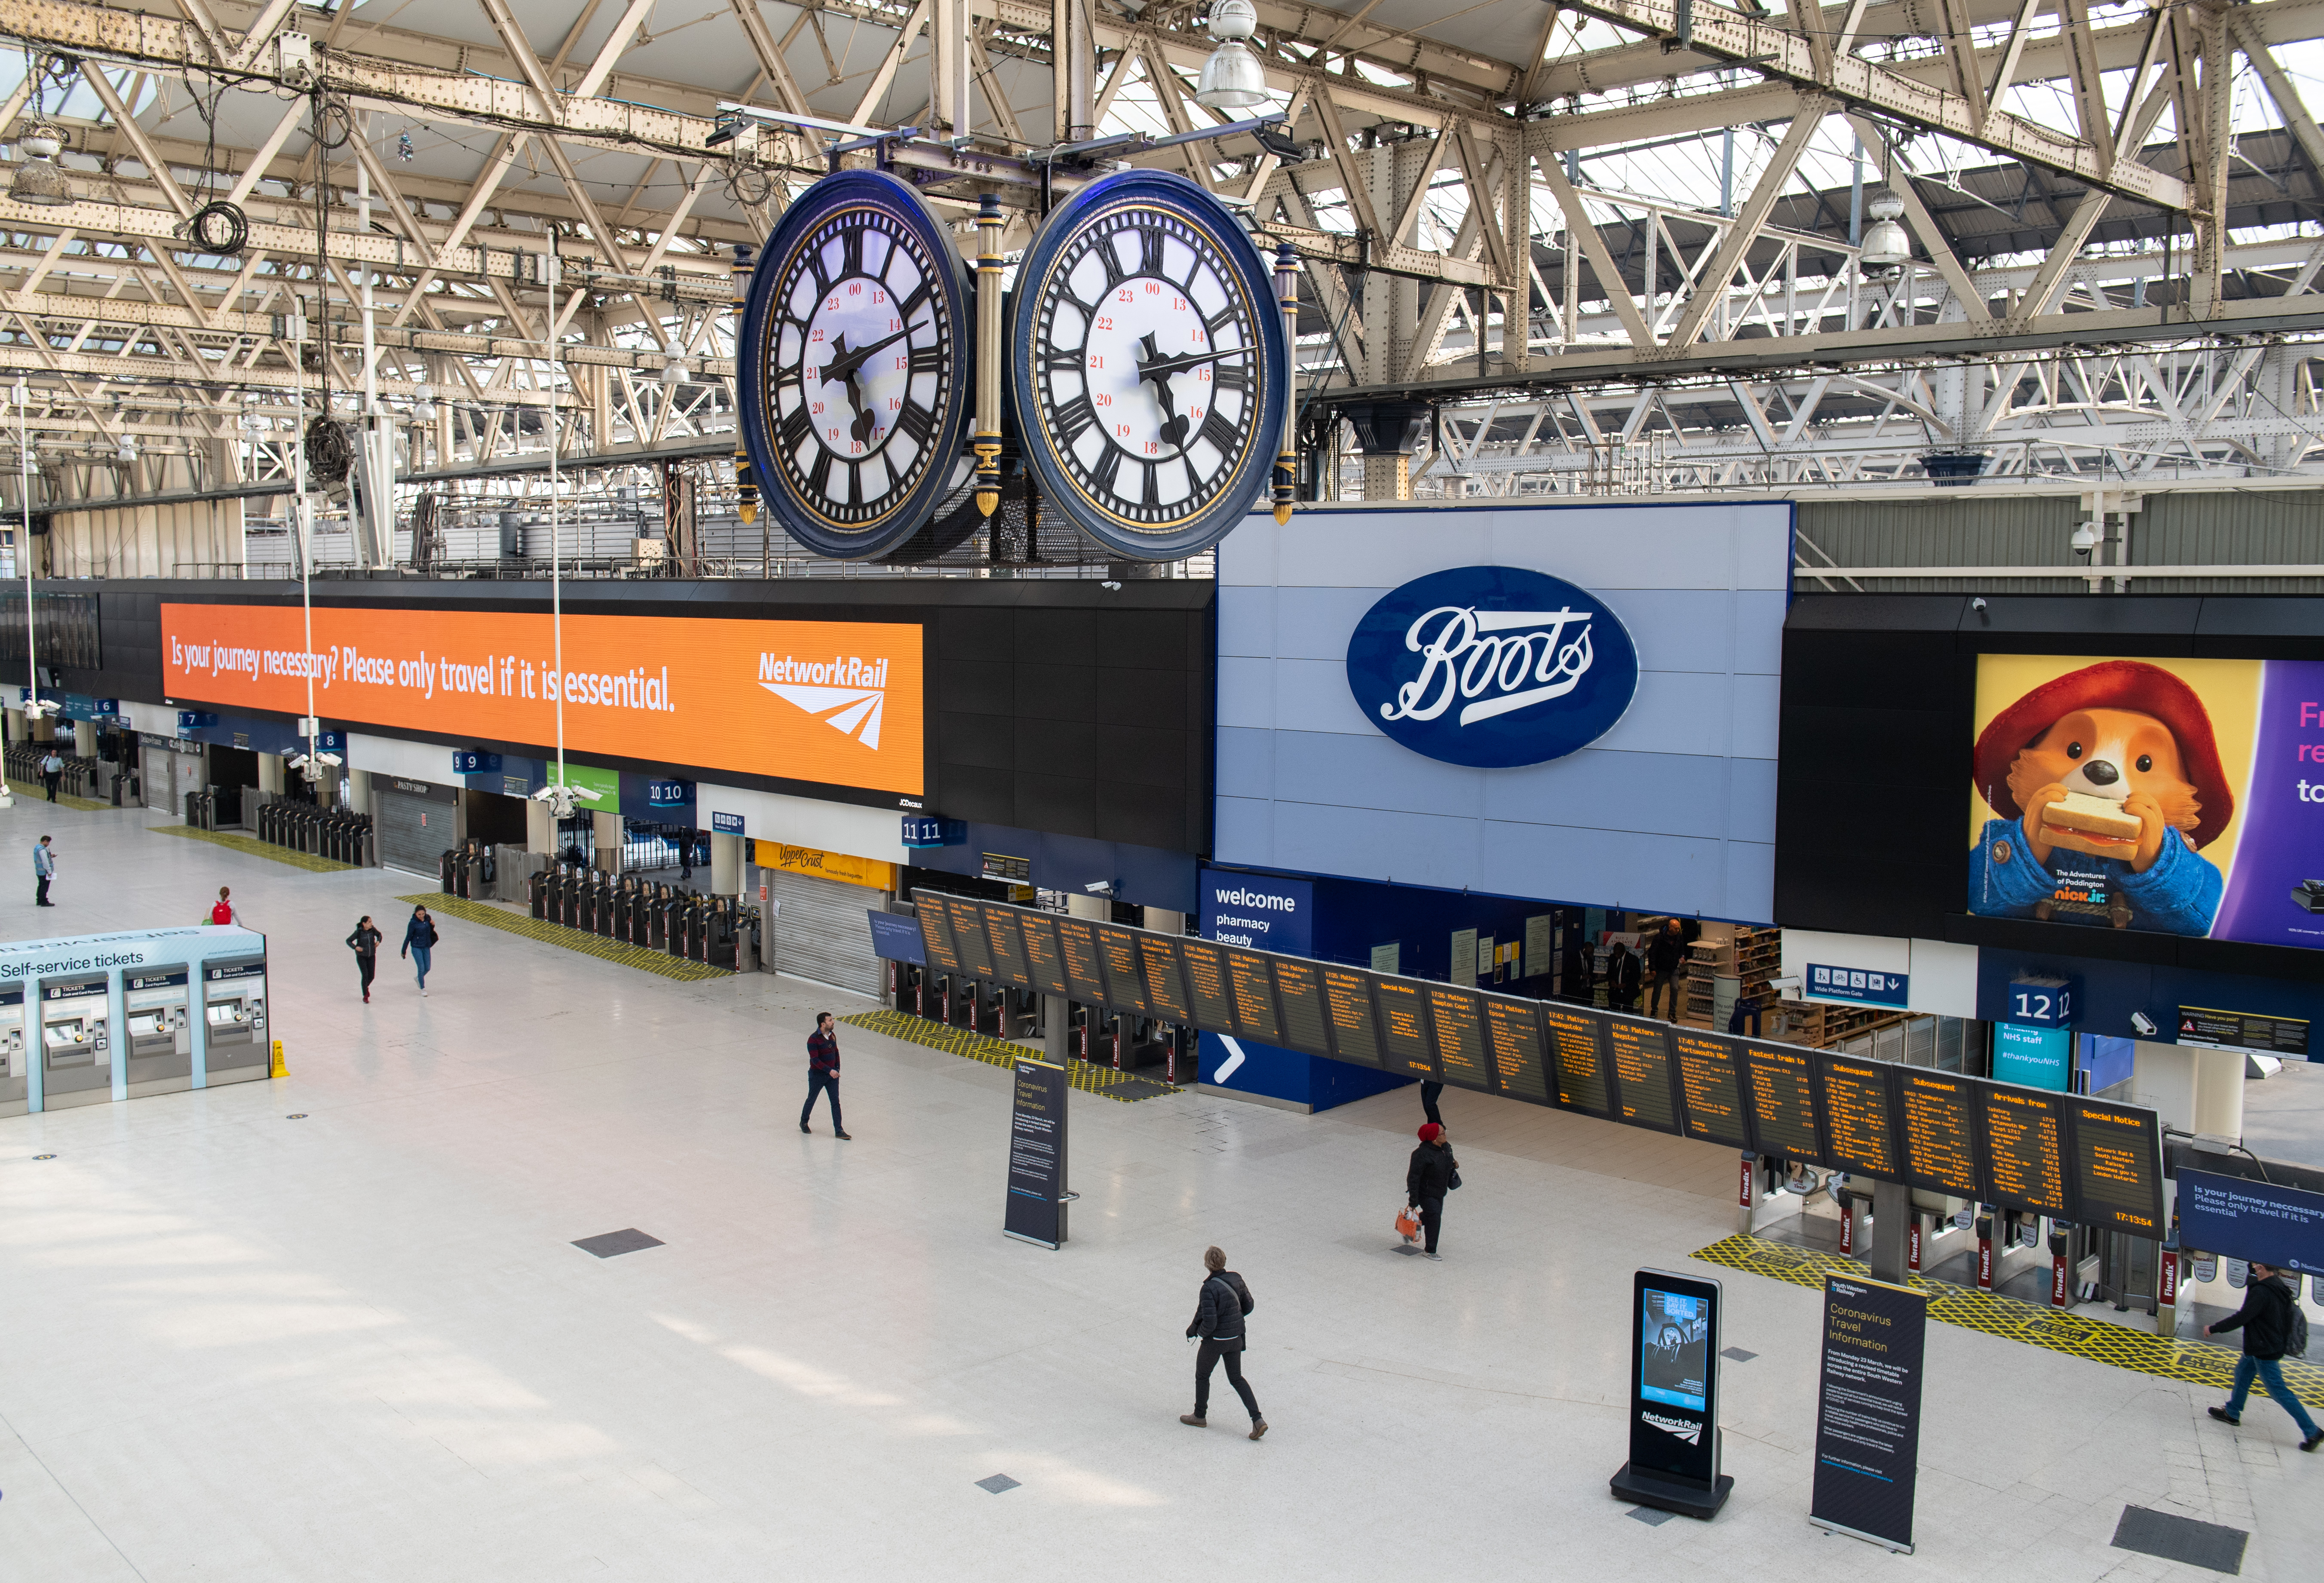 Travellers at a largely empty Waterloo station, in London, as the UK continues in lockdown to help curb the spread of the coronavirus.